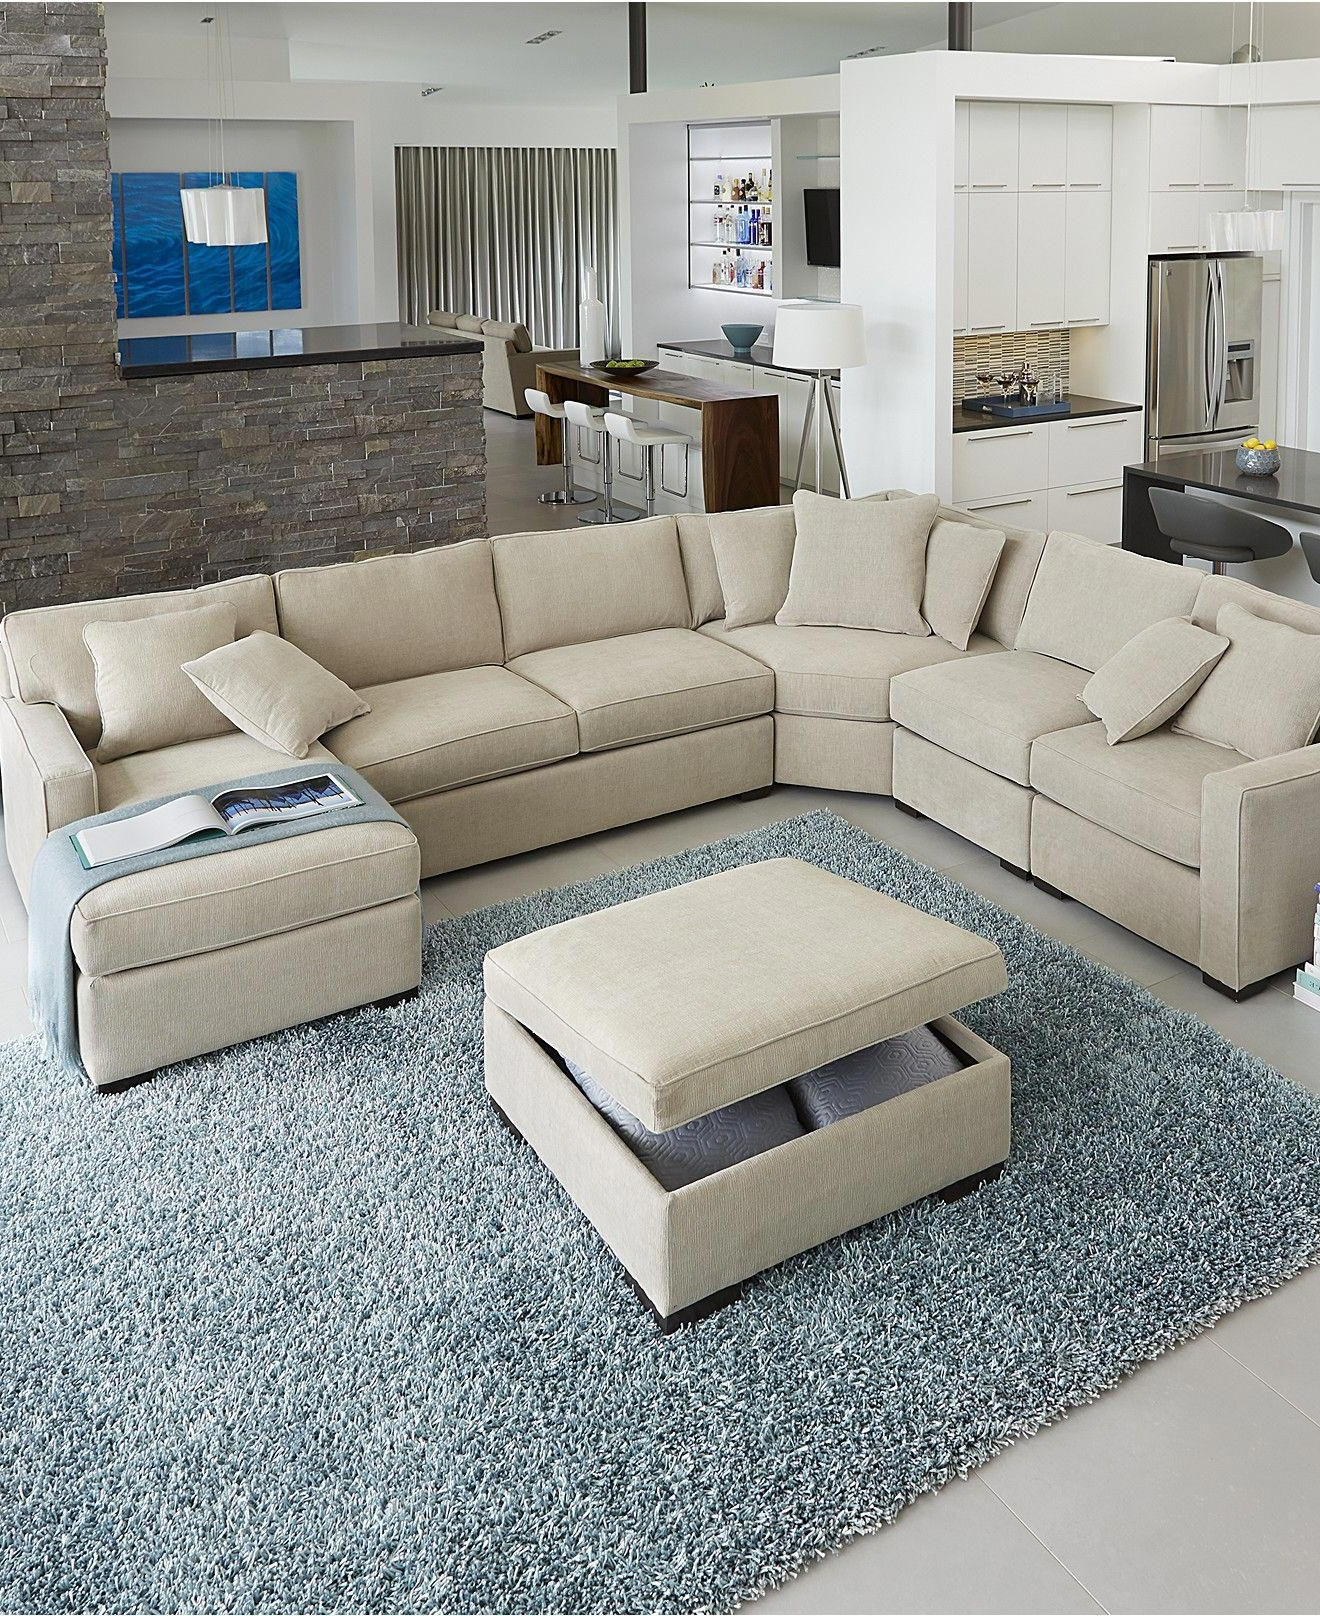 Kerri 2 Piece Sectionals With Laf Chaise Regarding Most Up To Date List Of Pinterest Living Spaces Furniture Sectional Sofas Layout (View 19 of 20)